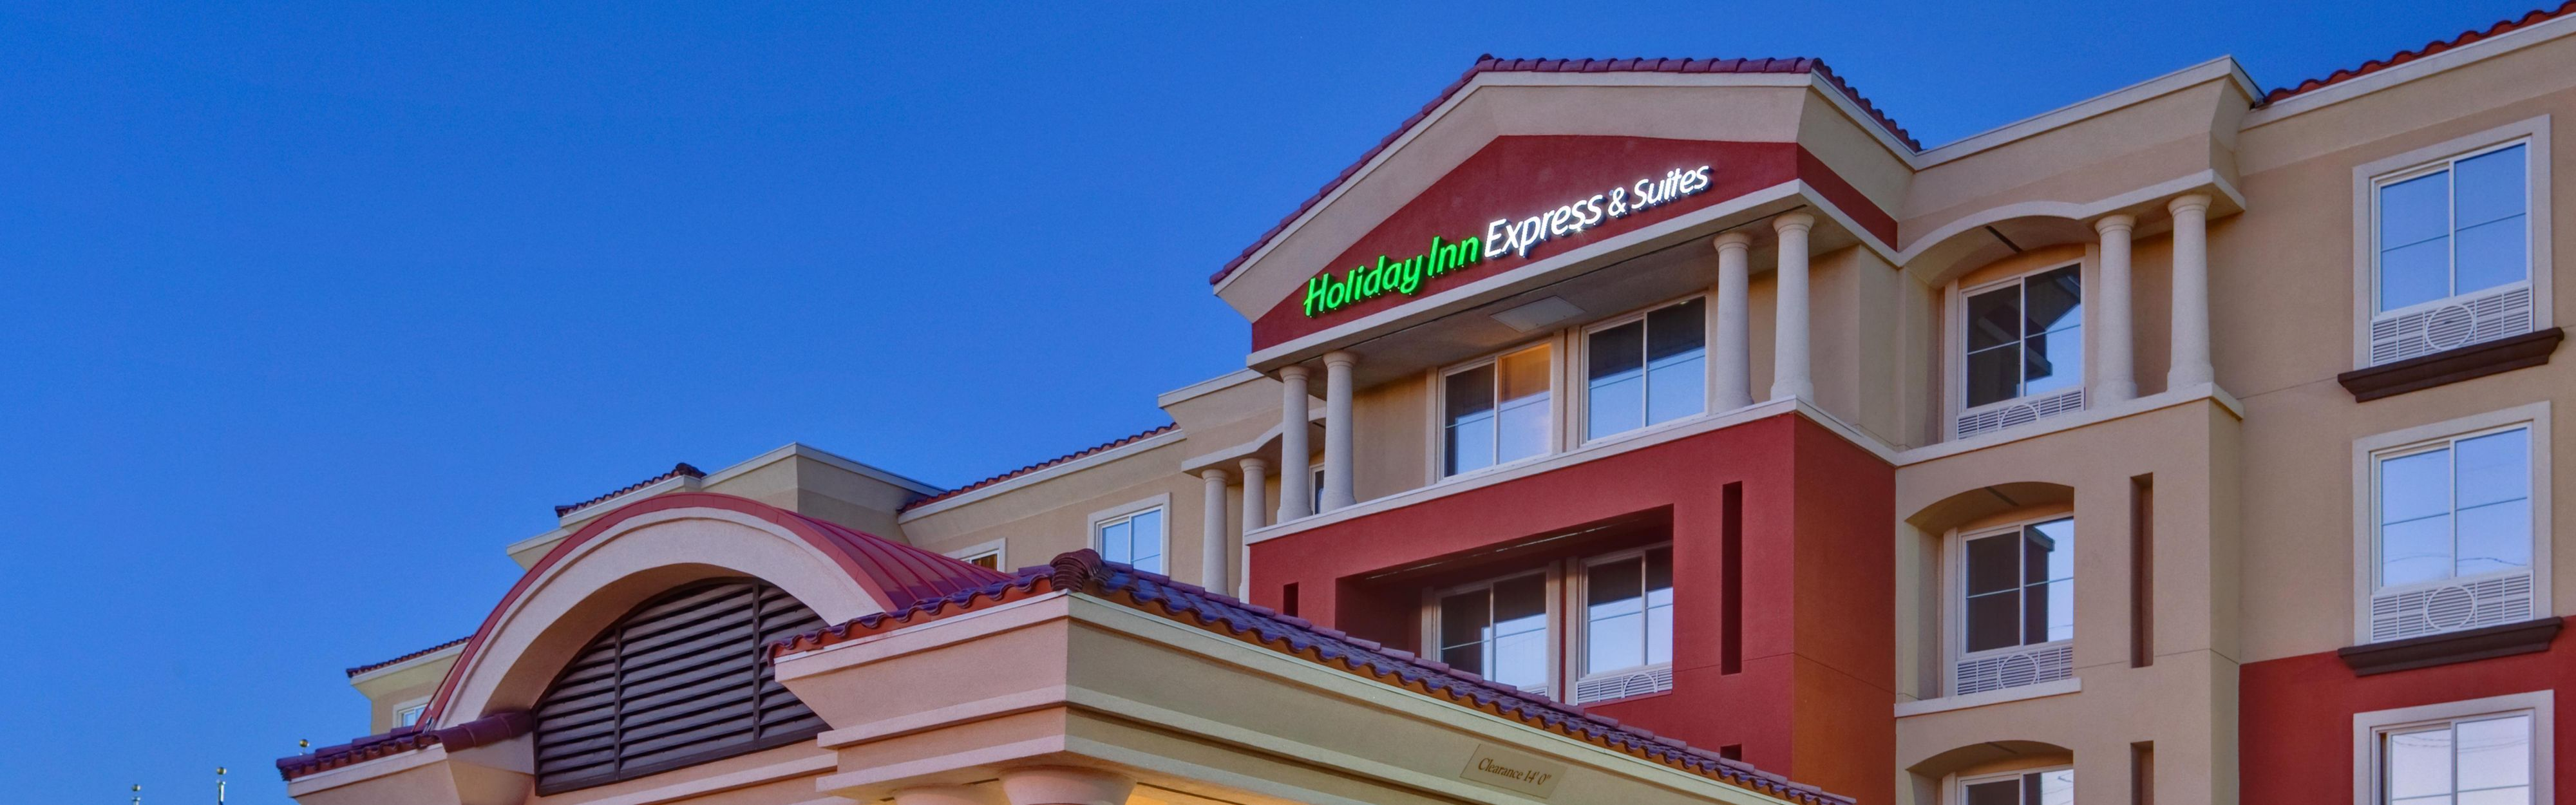 Holiday Inn Express & Suites Las Vegas SW - Spring Valley image 0